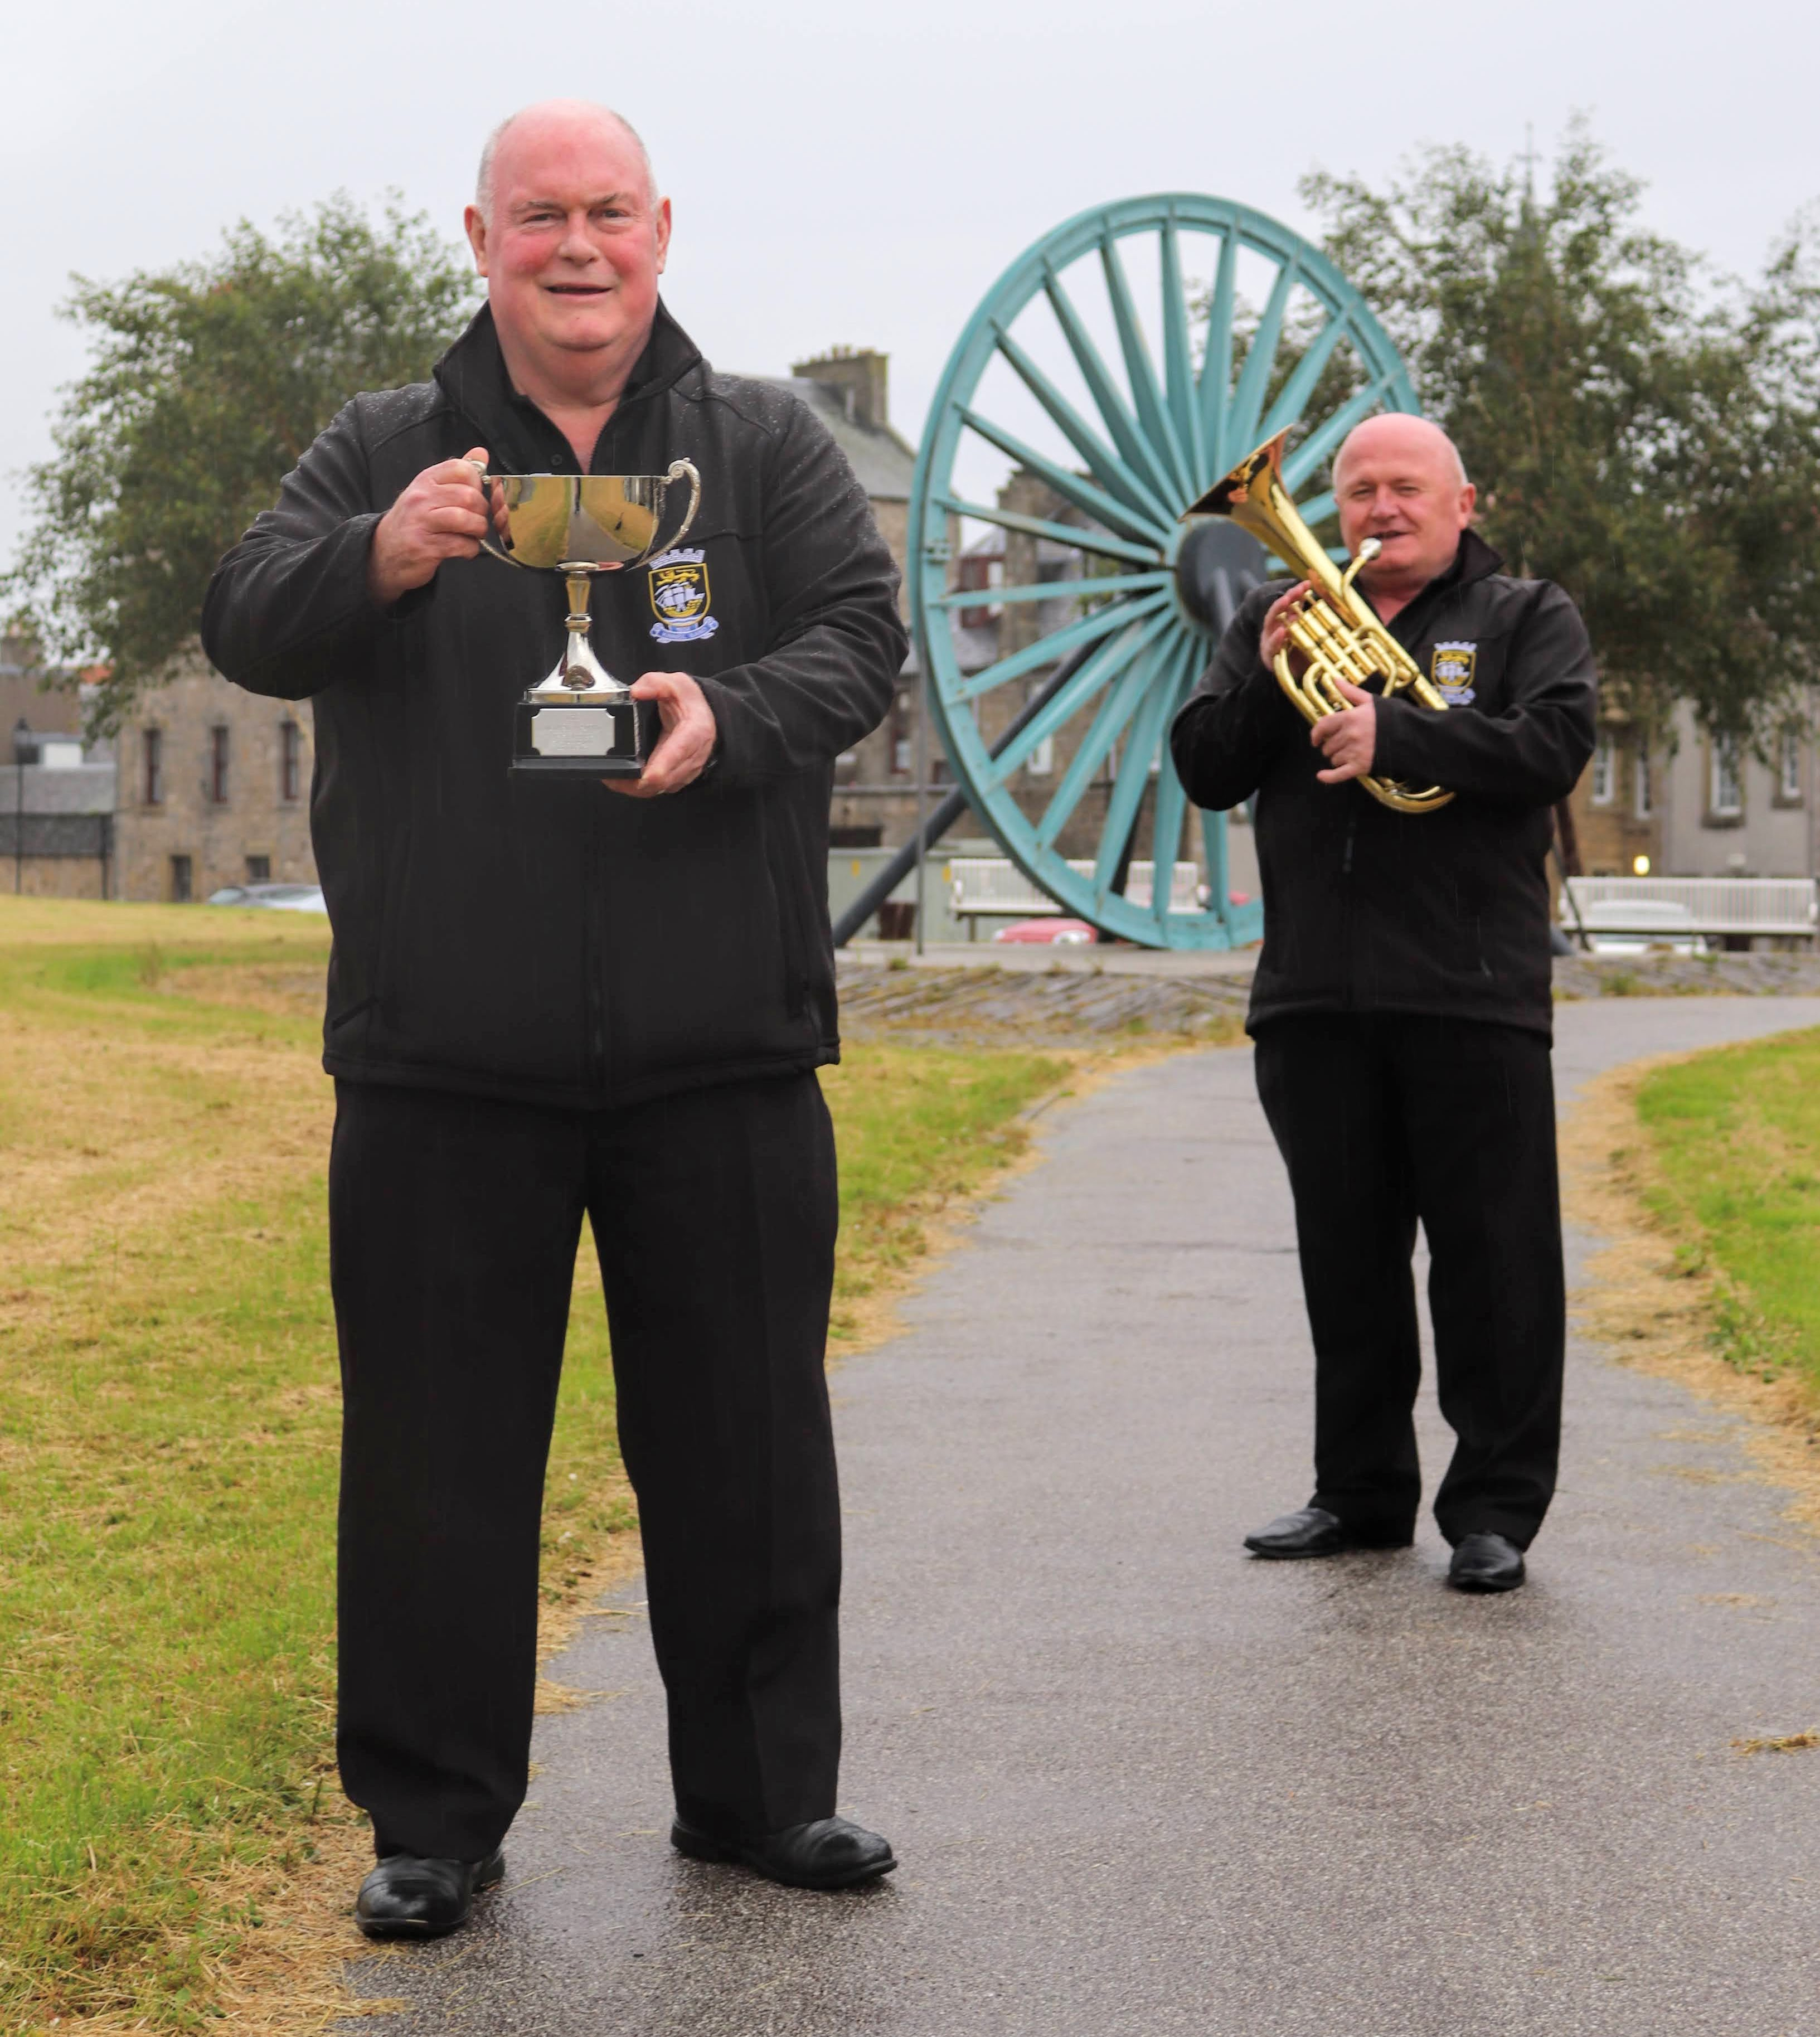 Brian Holmes and Robert Doherty from UNISON Kinneil Band celebrate the band's success winning the 2020 McLaren Trophy from Bo'ness Community Council.